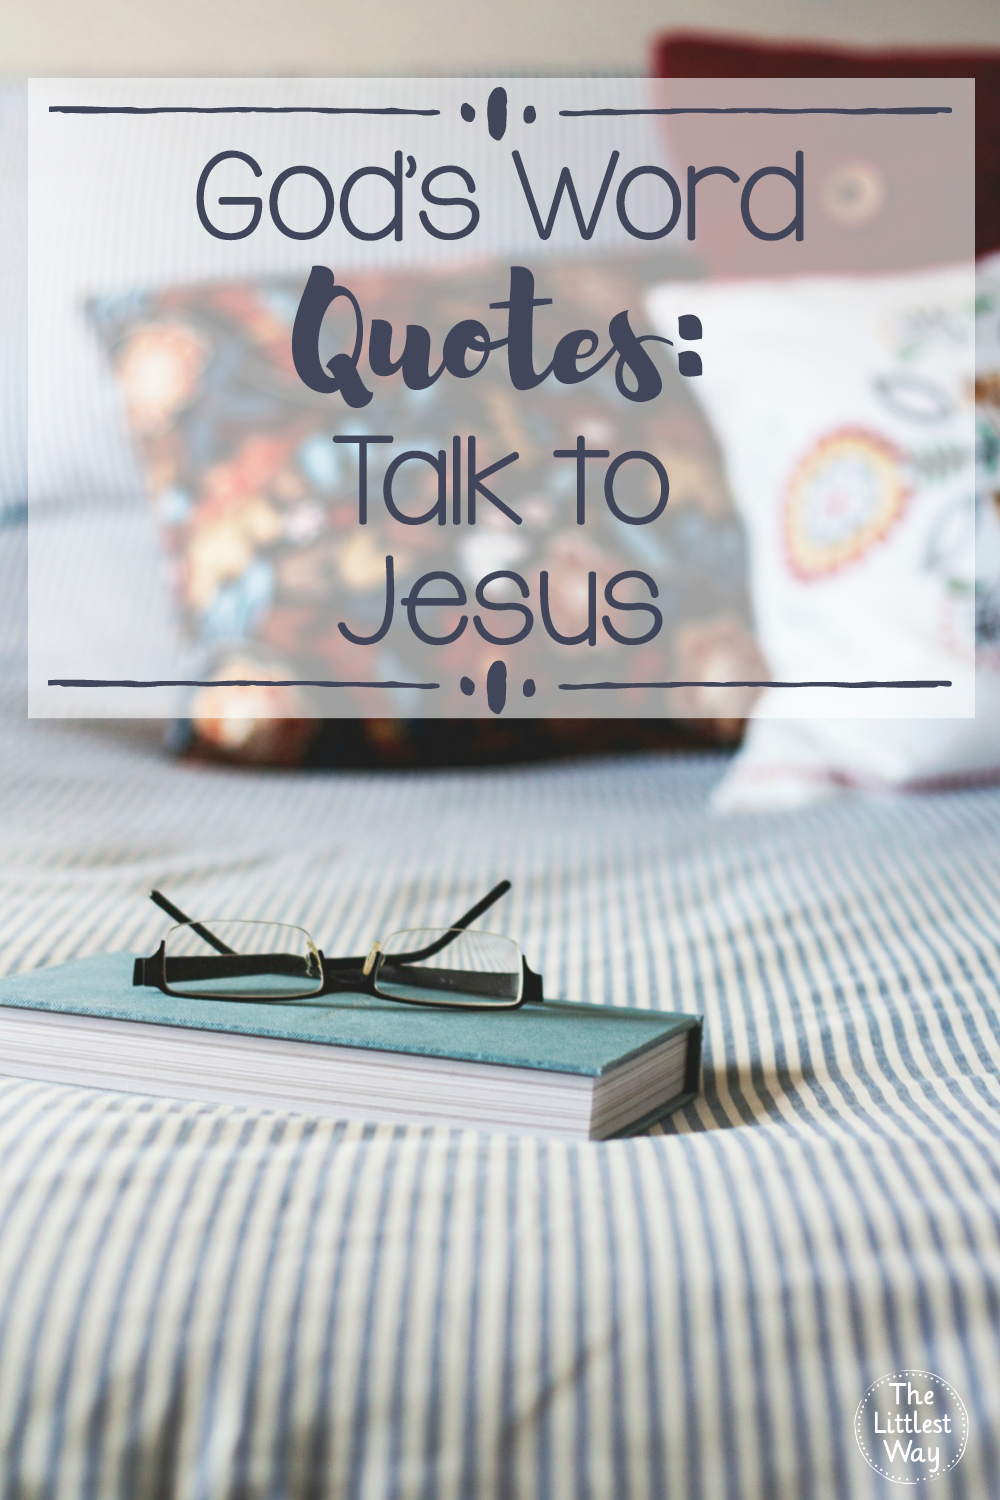 God's Word Quotes God's Word Quotes Talk To Jesus • The Littlest Way